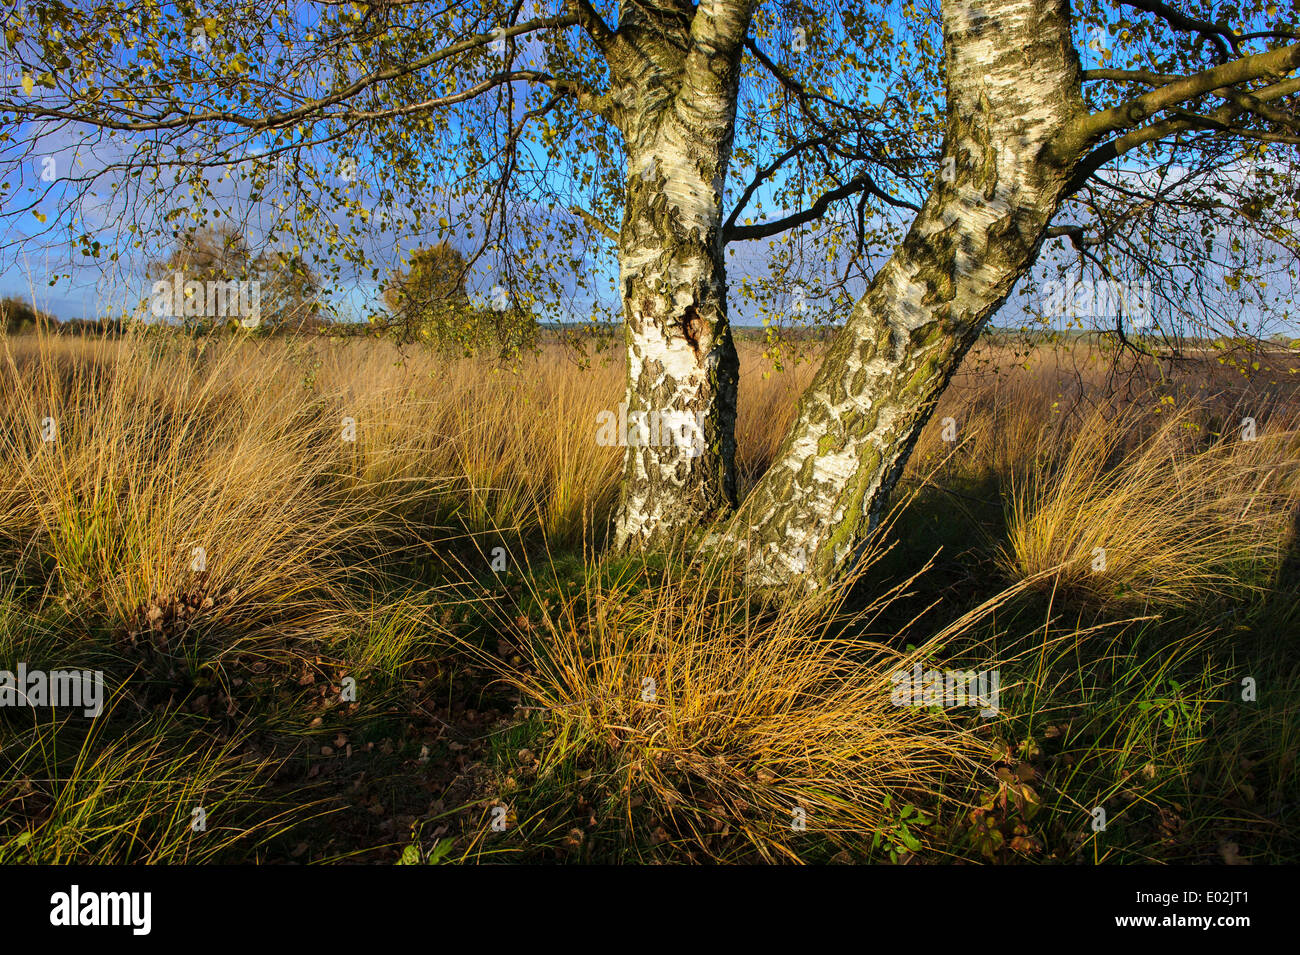 birches in goldenstedter moor, niedersachsen, lower saxony, germany Stock Photo